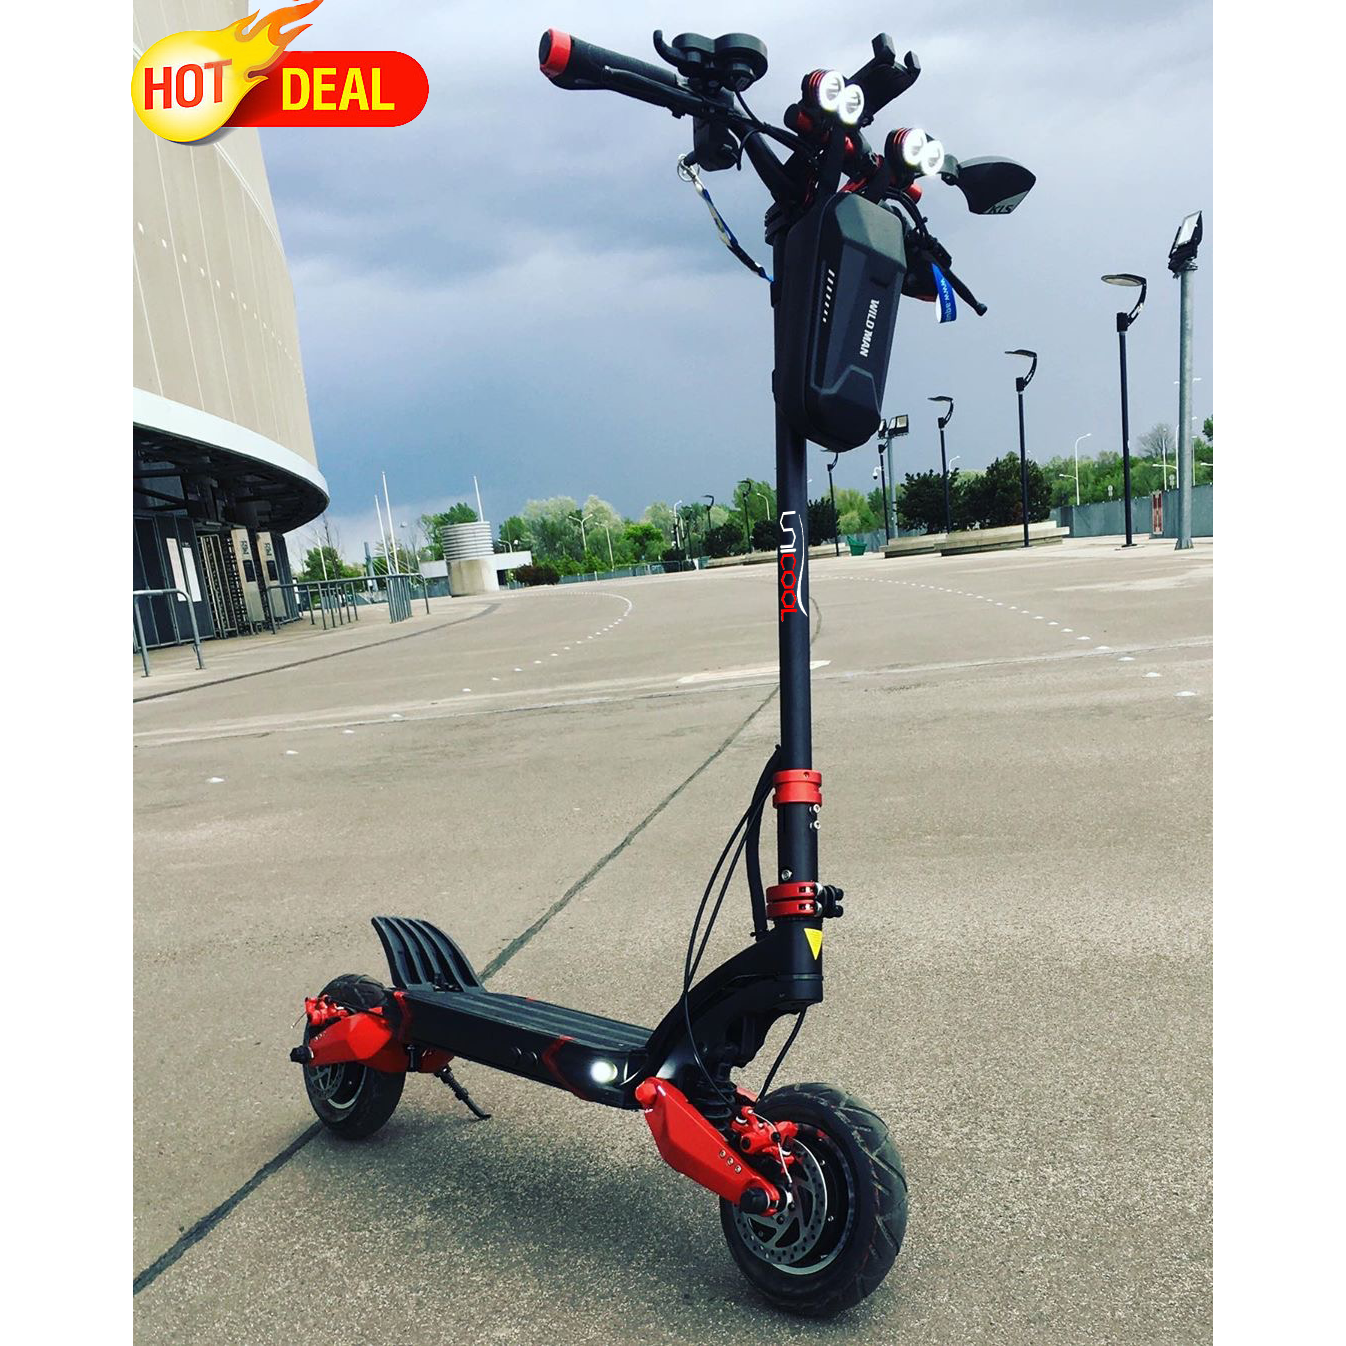 Unicool 2020 New design scooter <strong>electric</strong> adult dual motor suspension foldable powerful 60V 2000w <strong>electric</strong> scooters